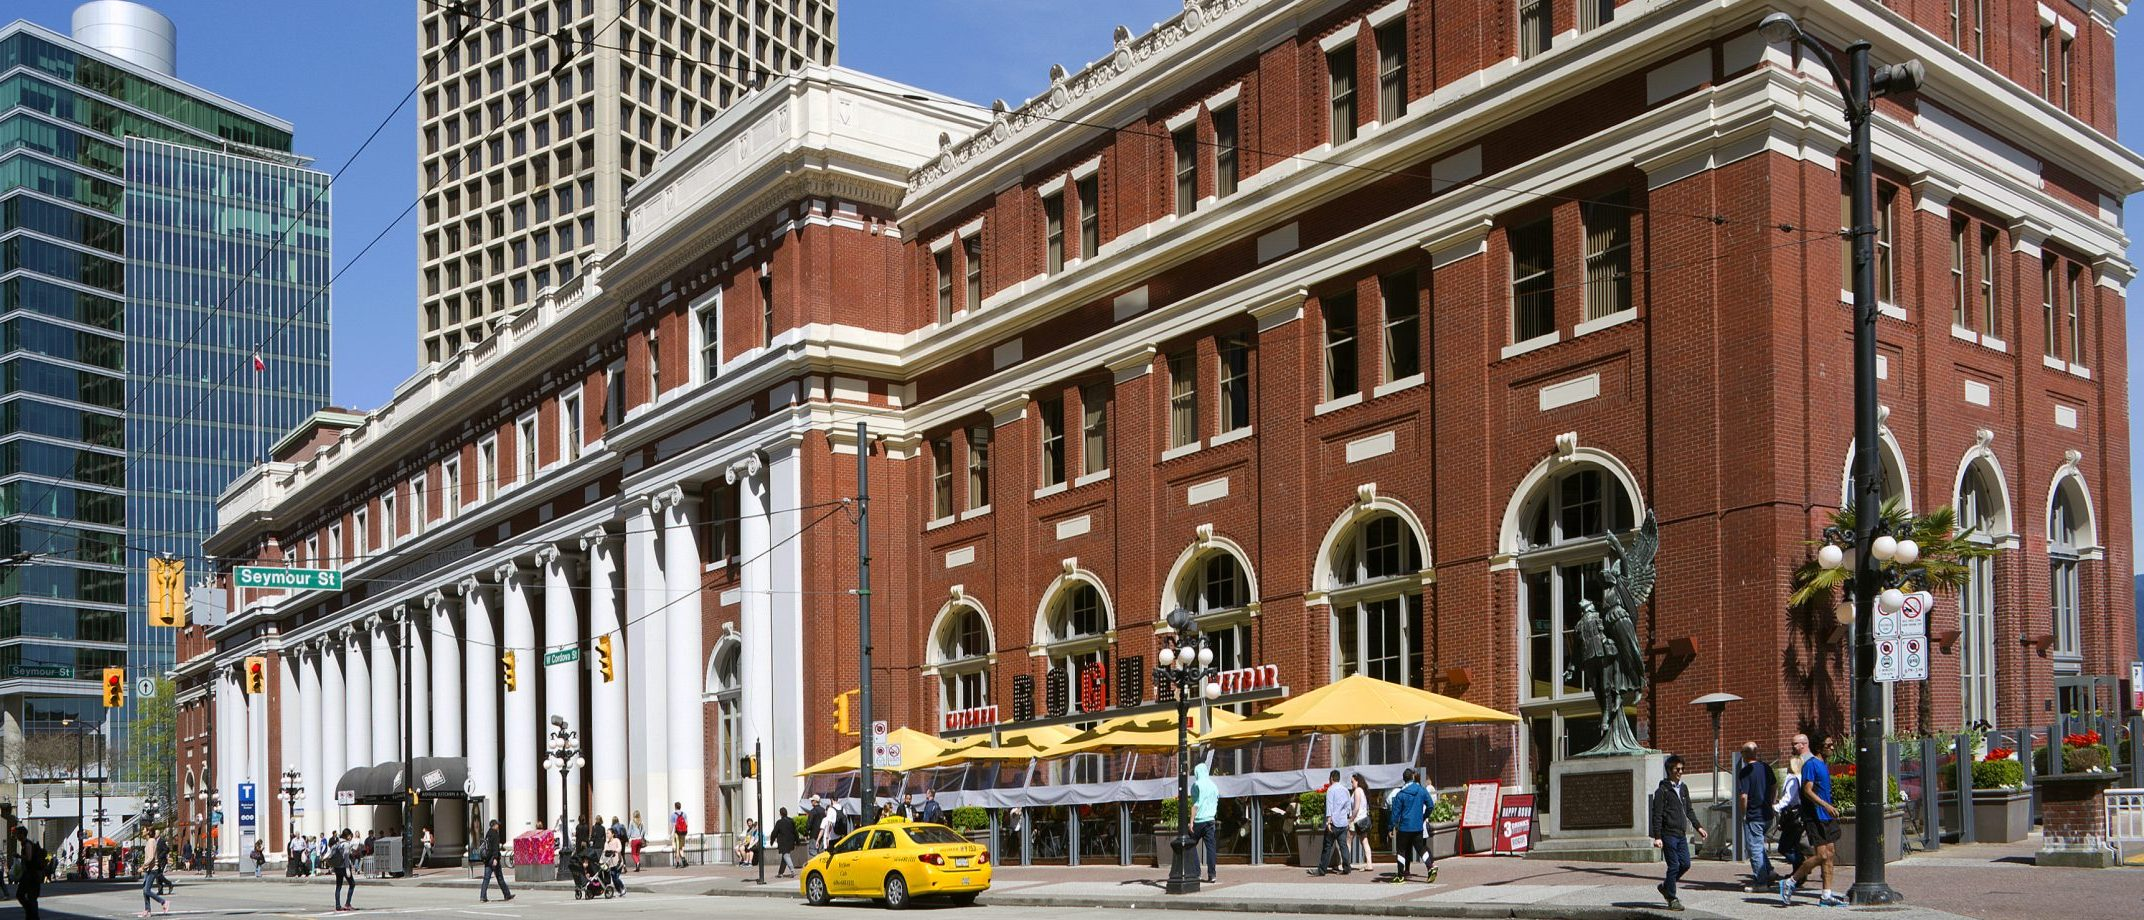 Header Image Contact Page Of Waterfront Station Building